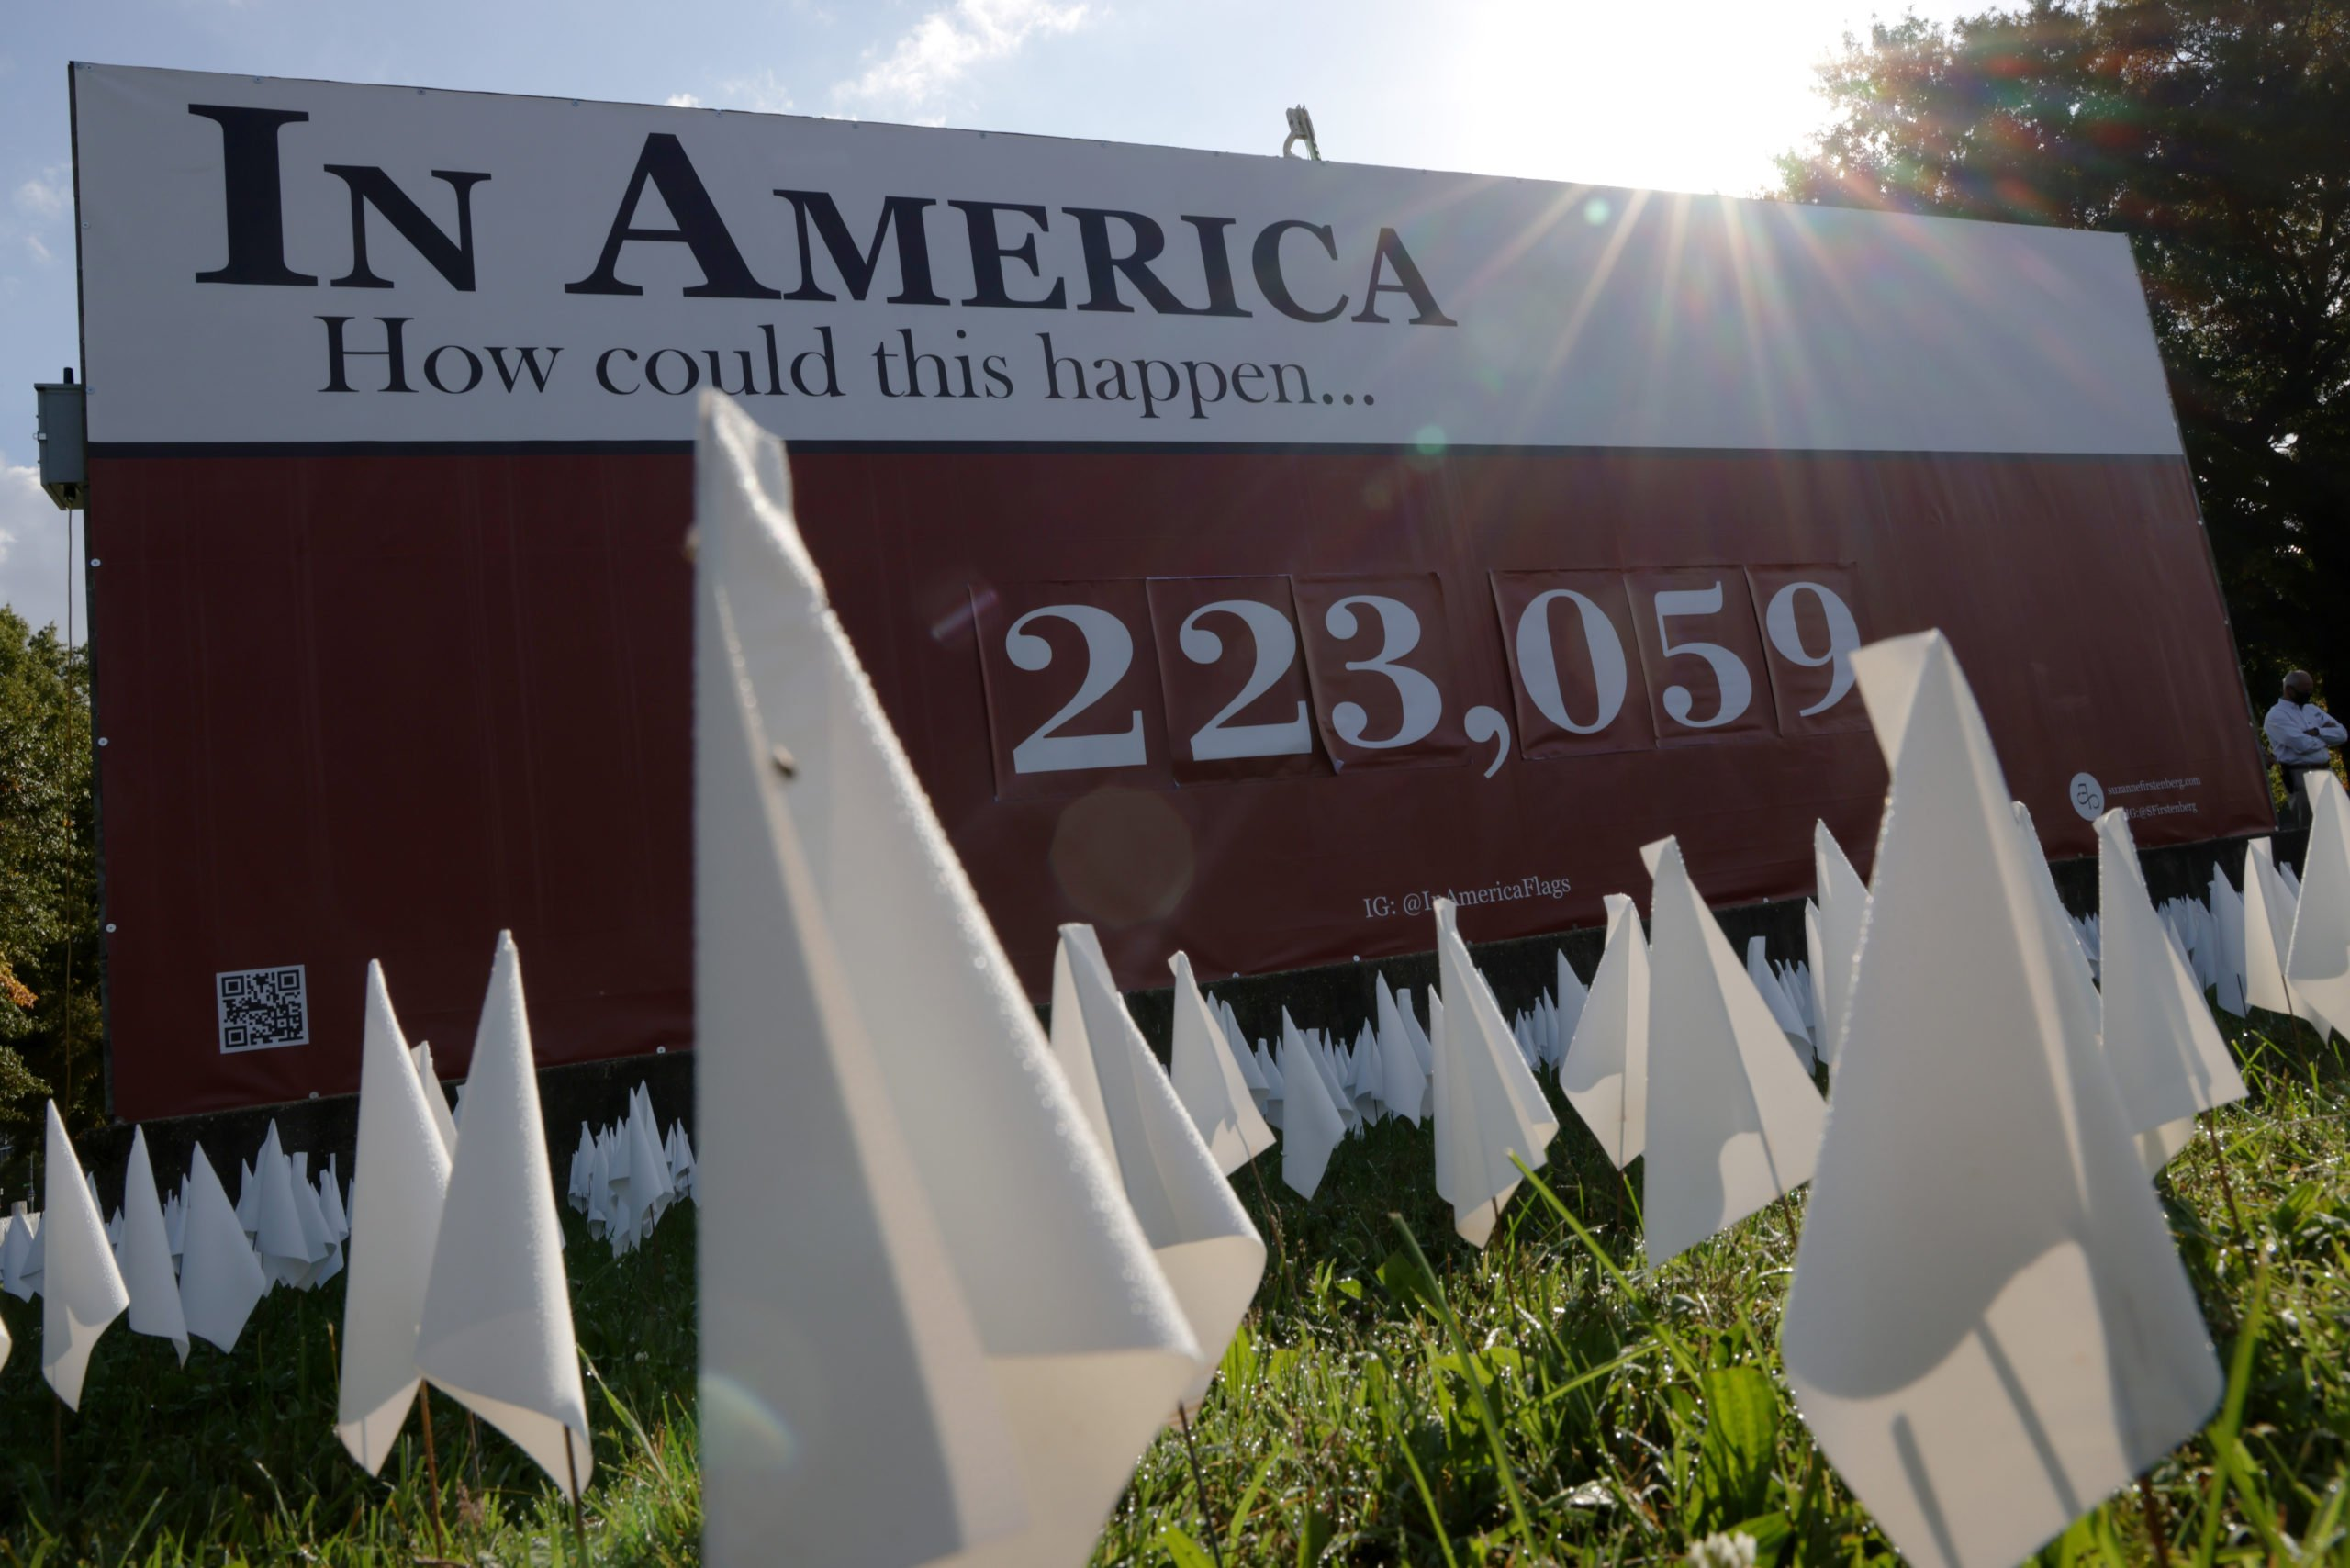 White flags are seen during a press preview of a public art project on Friday in Washington, DC depicting the amount of Americans who have died from coronavirus. (Photo by Alex Wong/Getty Images)